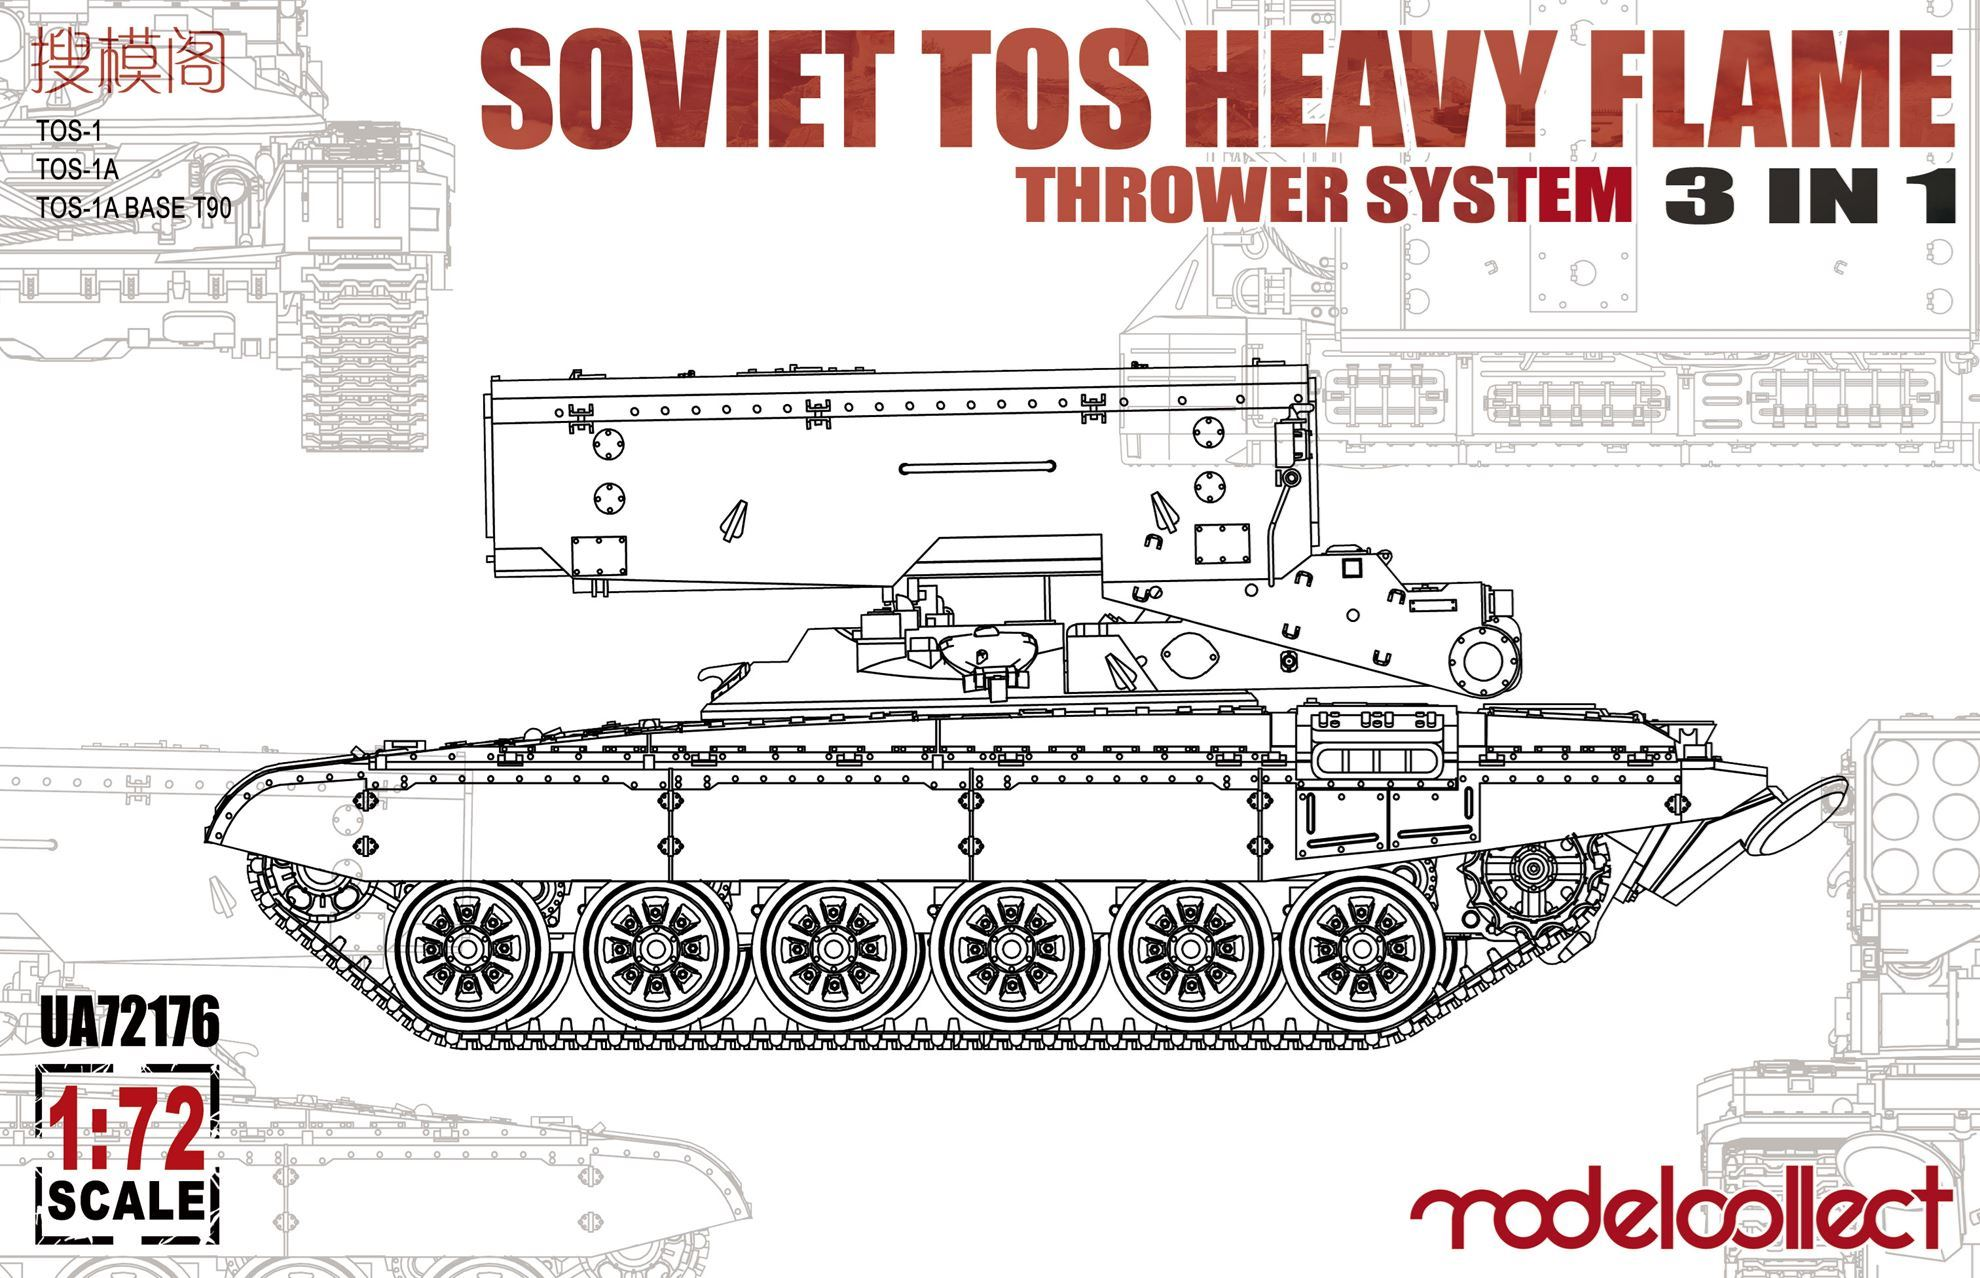 ModelCollect Soviet TOS Heavy Flame Thrower System 3 in 1